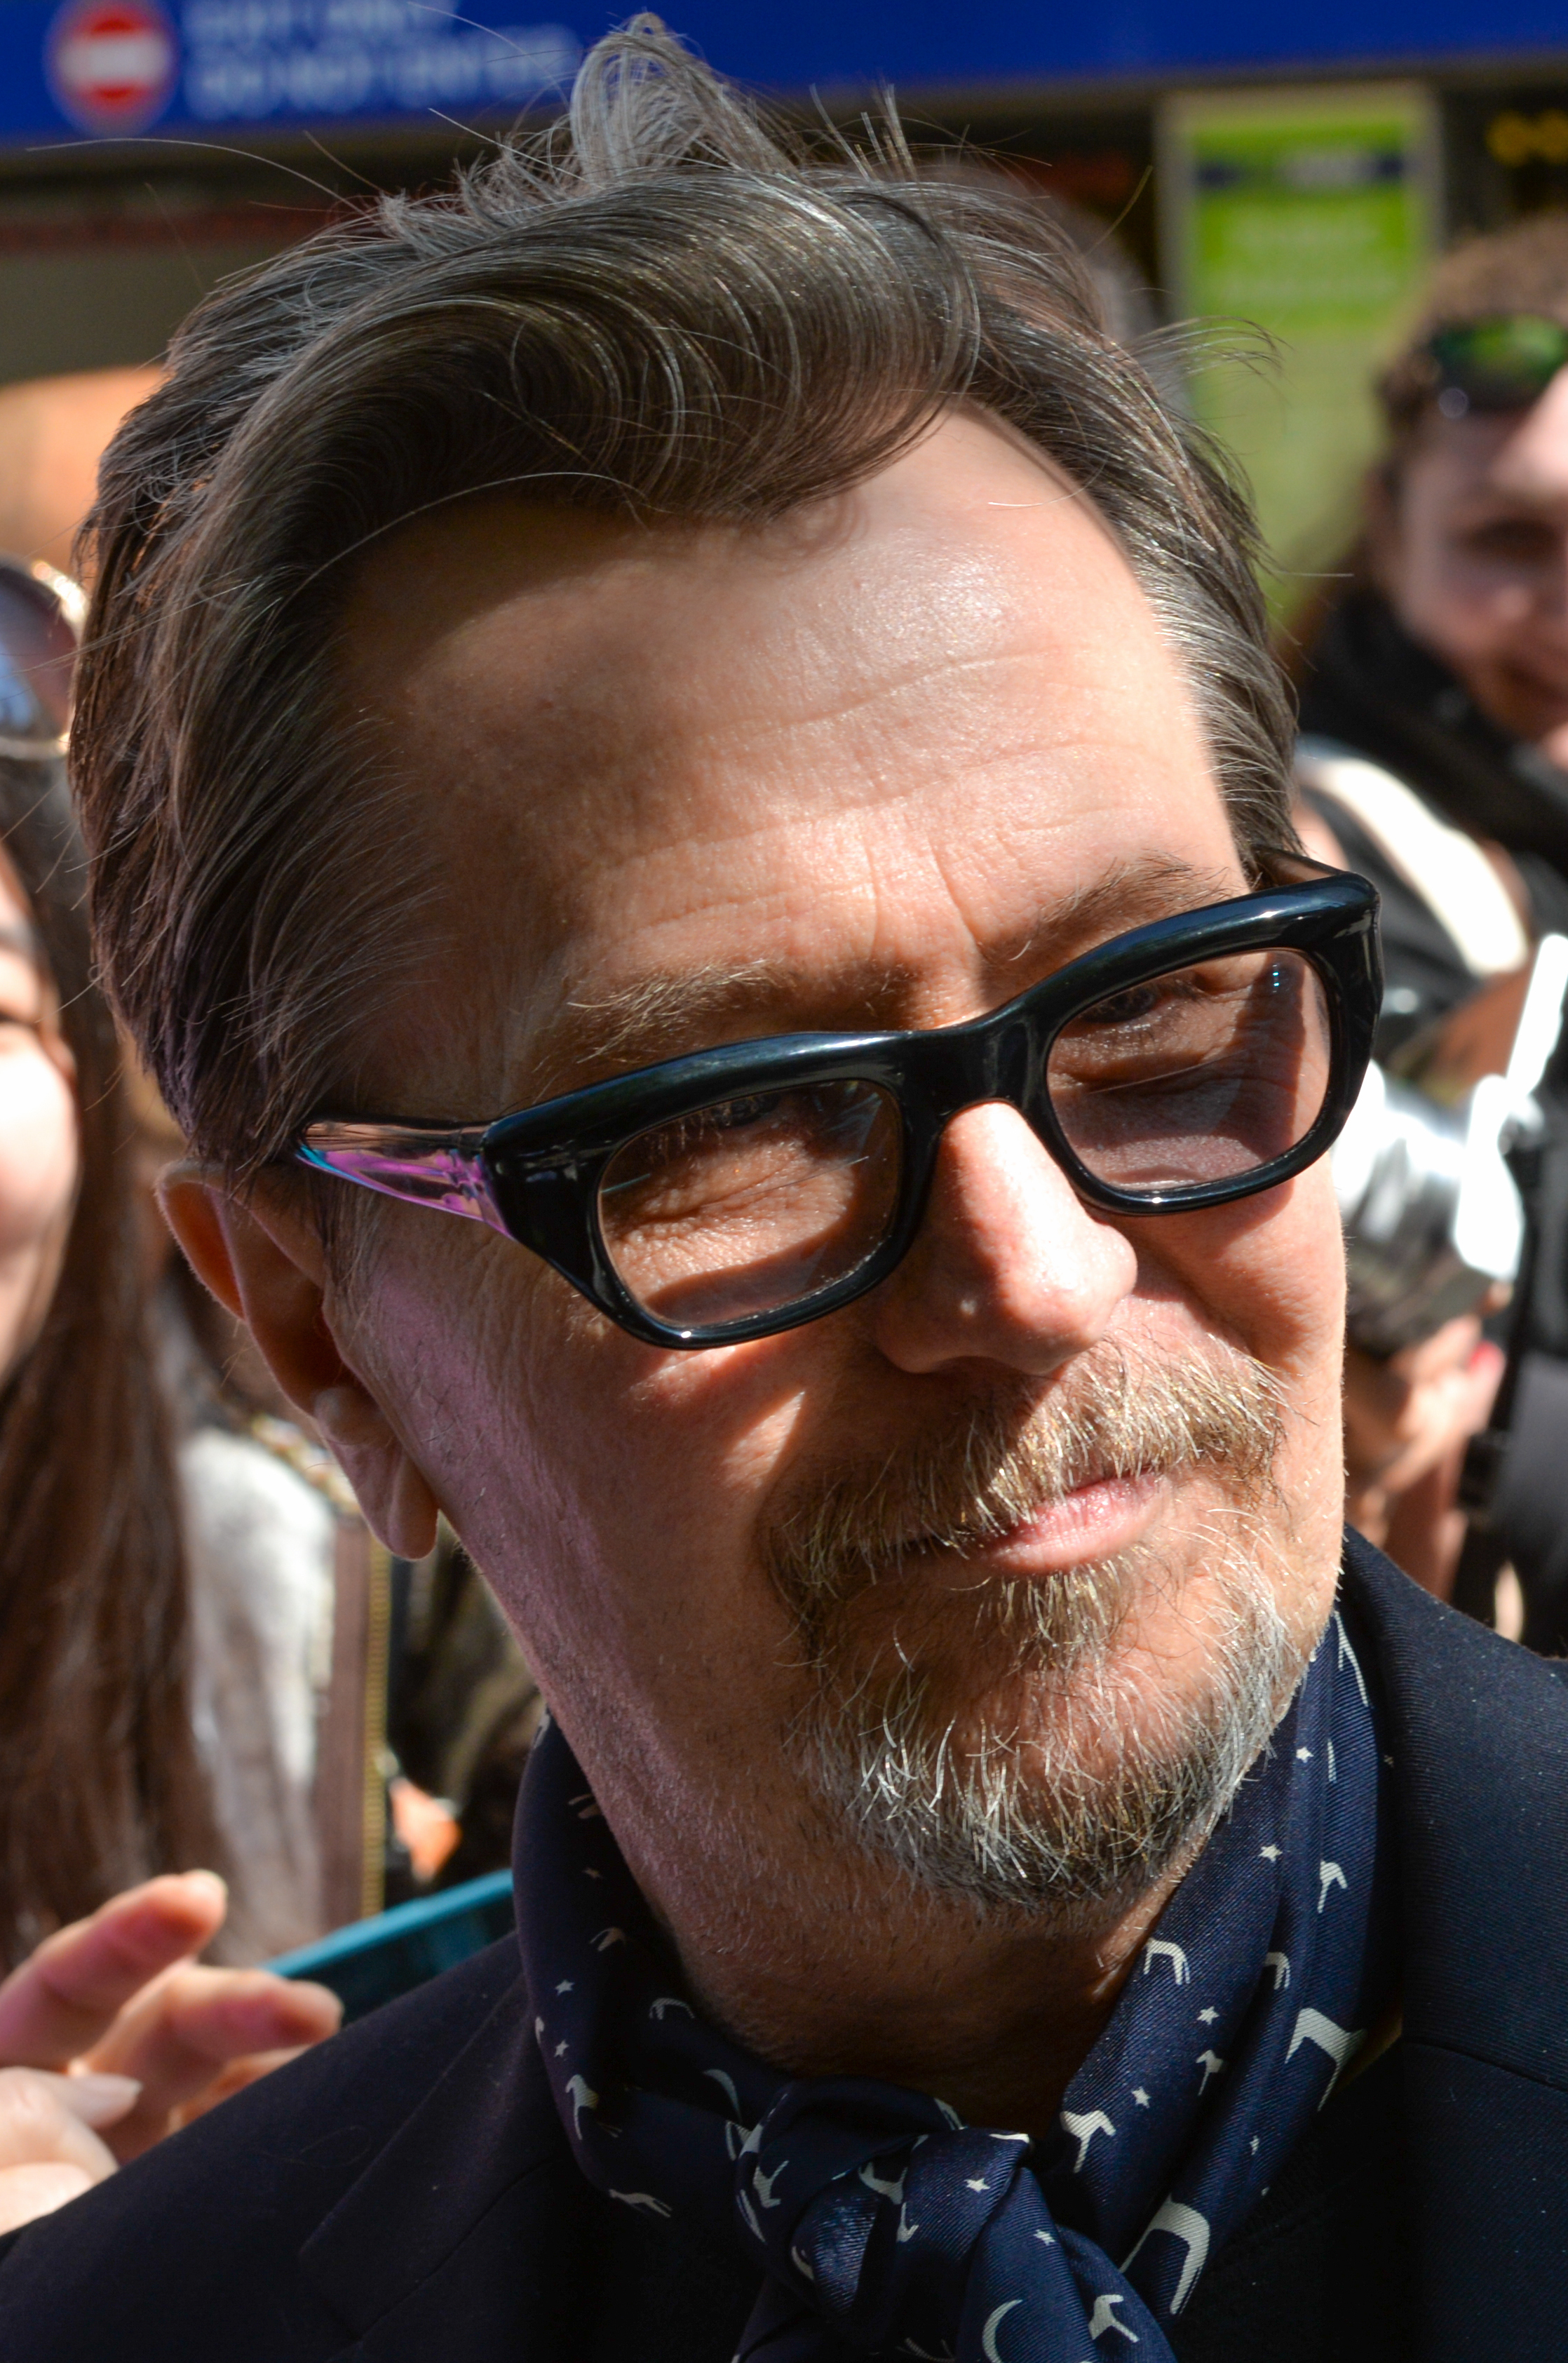 The 60-year old son of father Leonard Bertram Oldman and mother Kathleen Oldman Gary Oldman in 2019 photo. Gary Oldman earned a  million dollar salary - leaving the net worth at 40 million in 2019